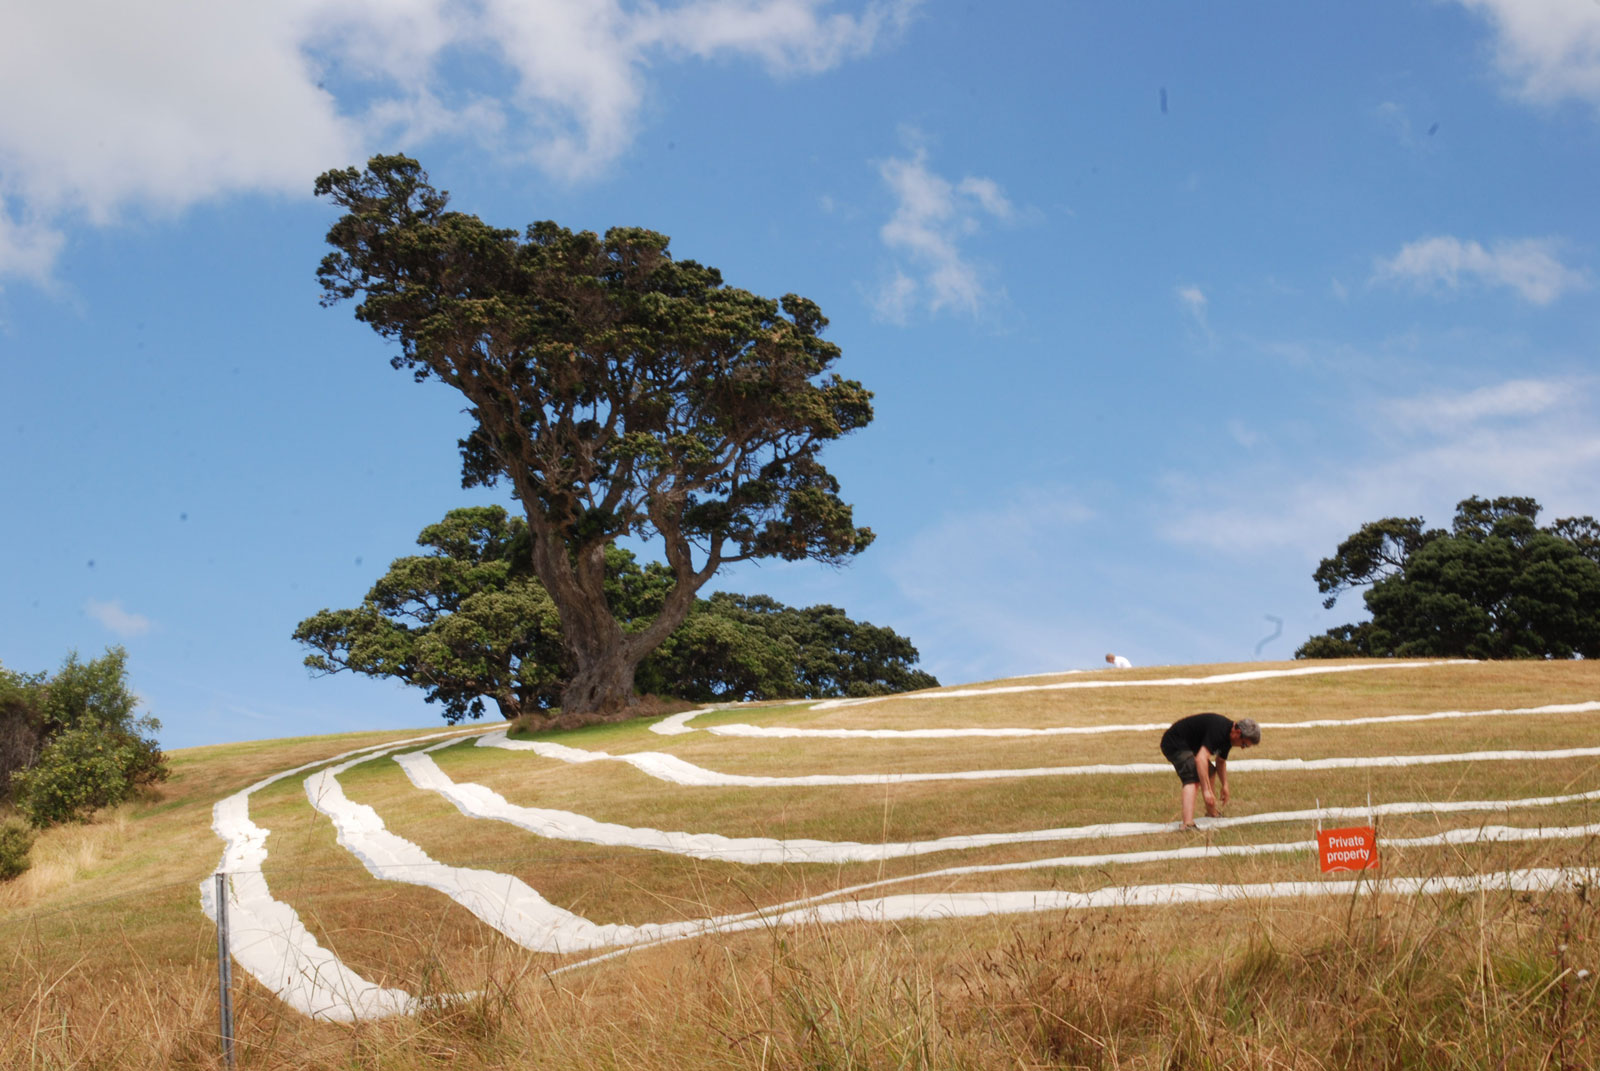 Who's benefit this land? NZ as private property on Waiheke Island Sculpture Trail. The epitome of NZ tourism: landscape, wine and culture.